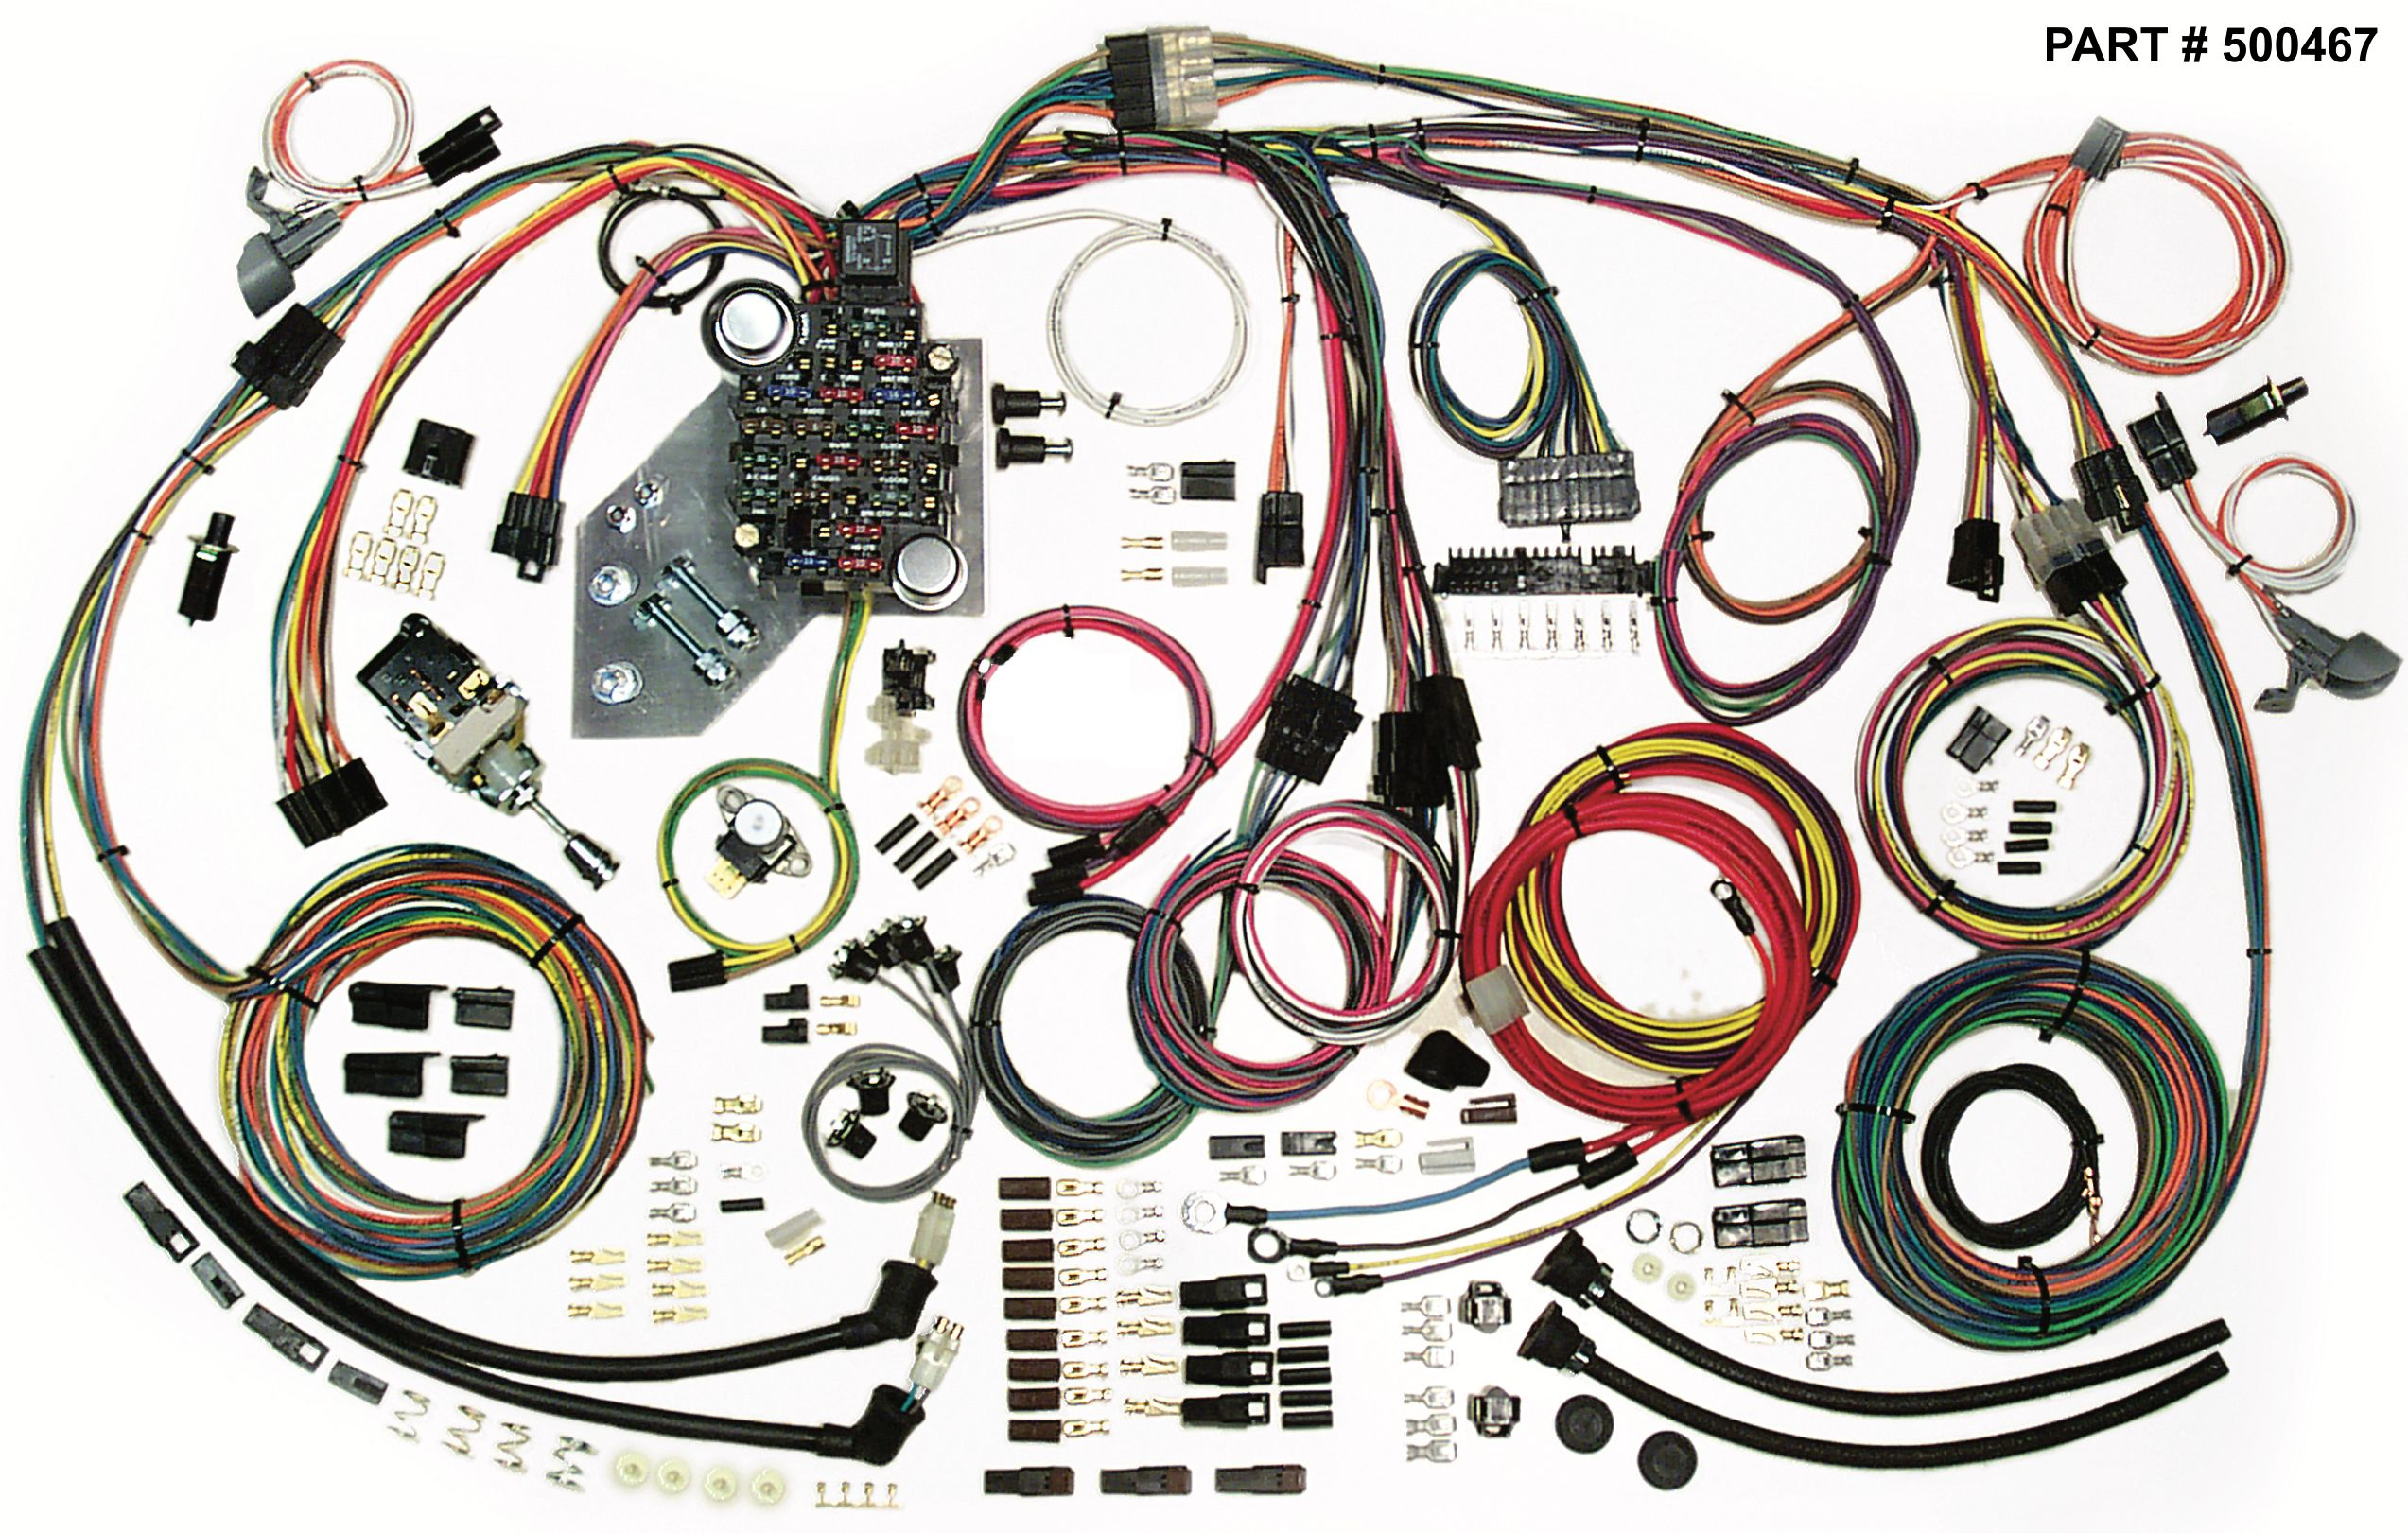 1947 2nd Series 1955 1st Series Chevrolet GMC Trucks - Gmc Truck Wiring Harness